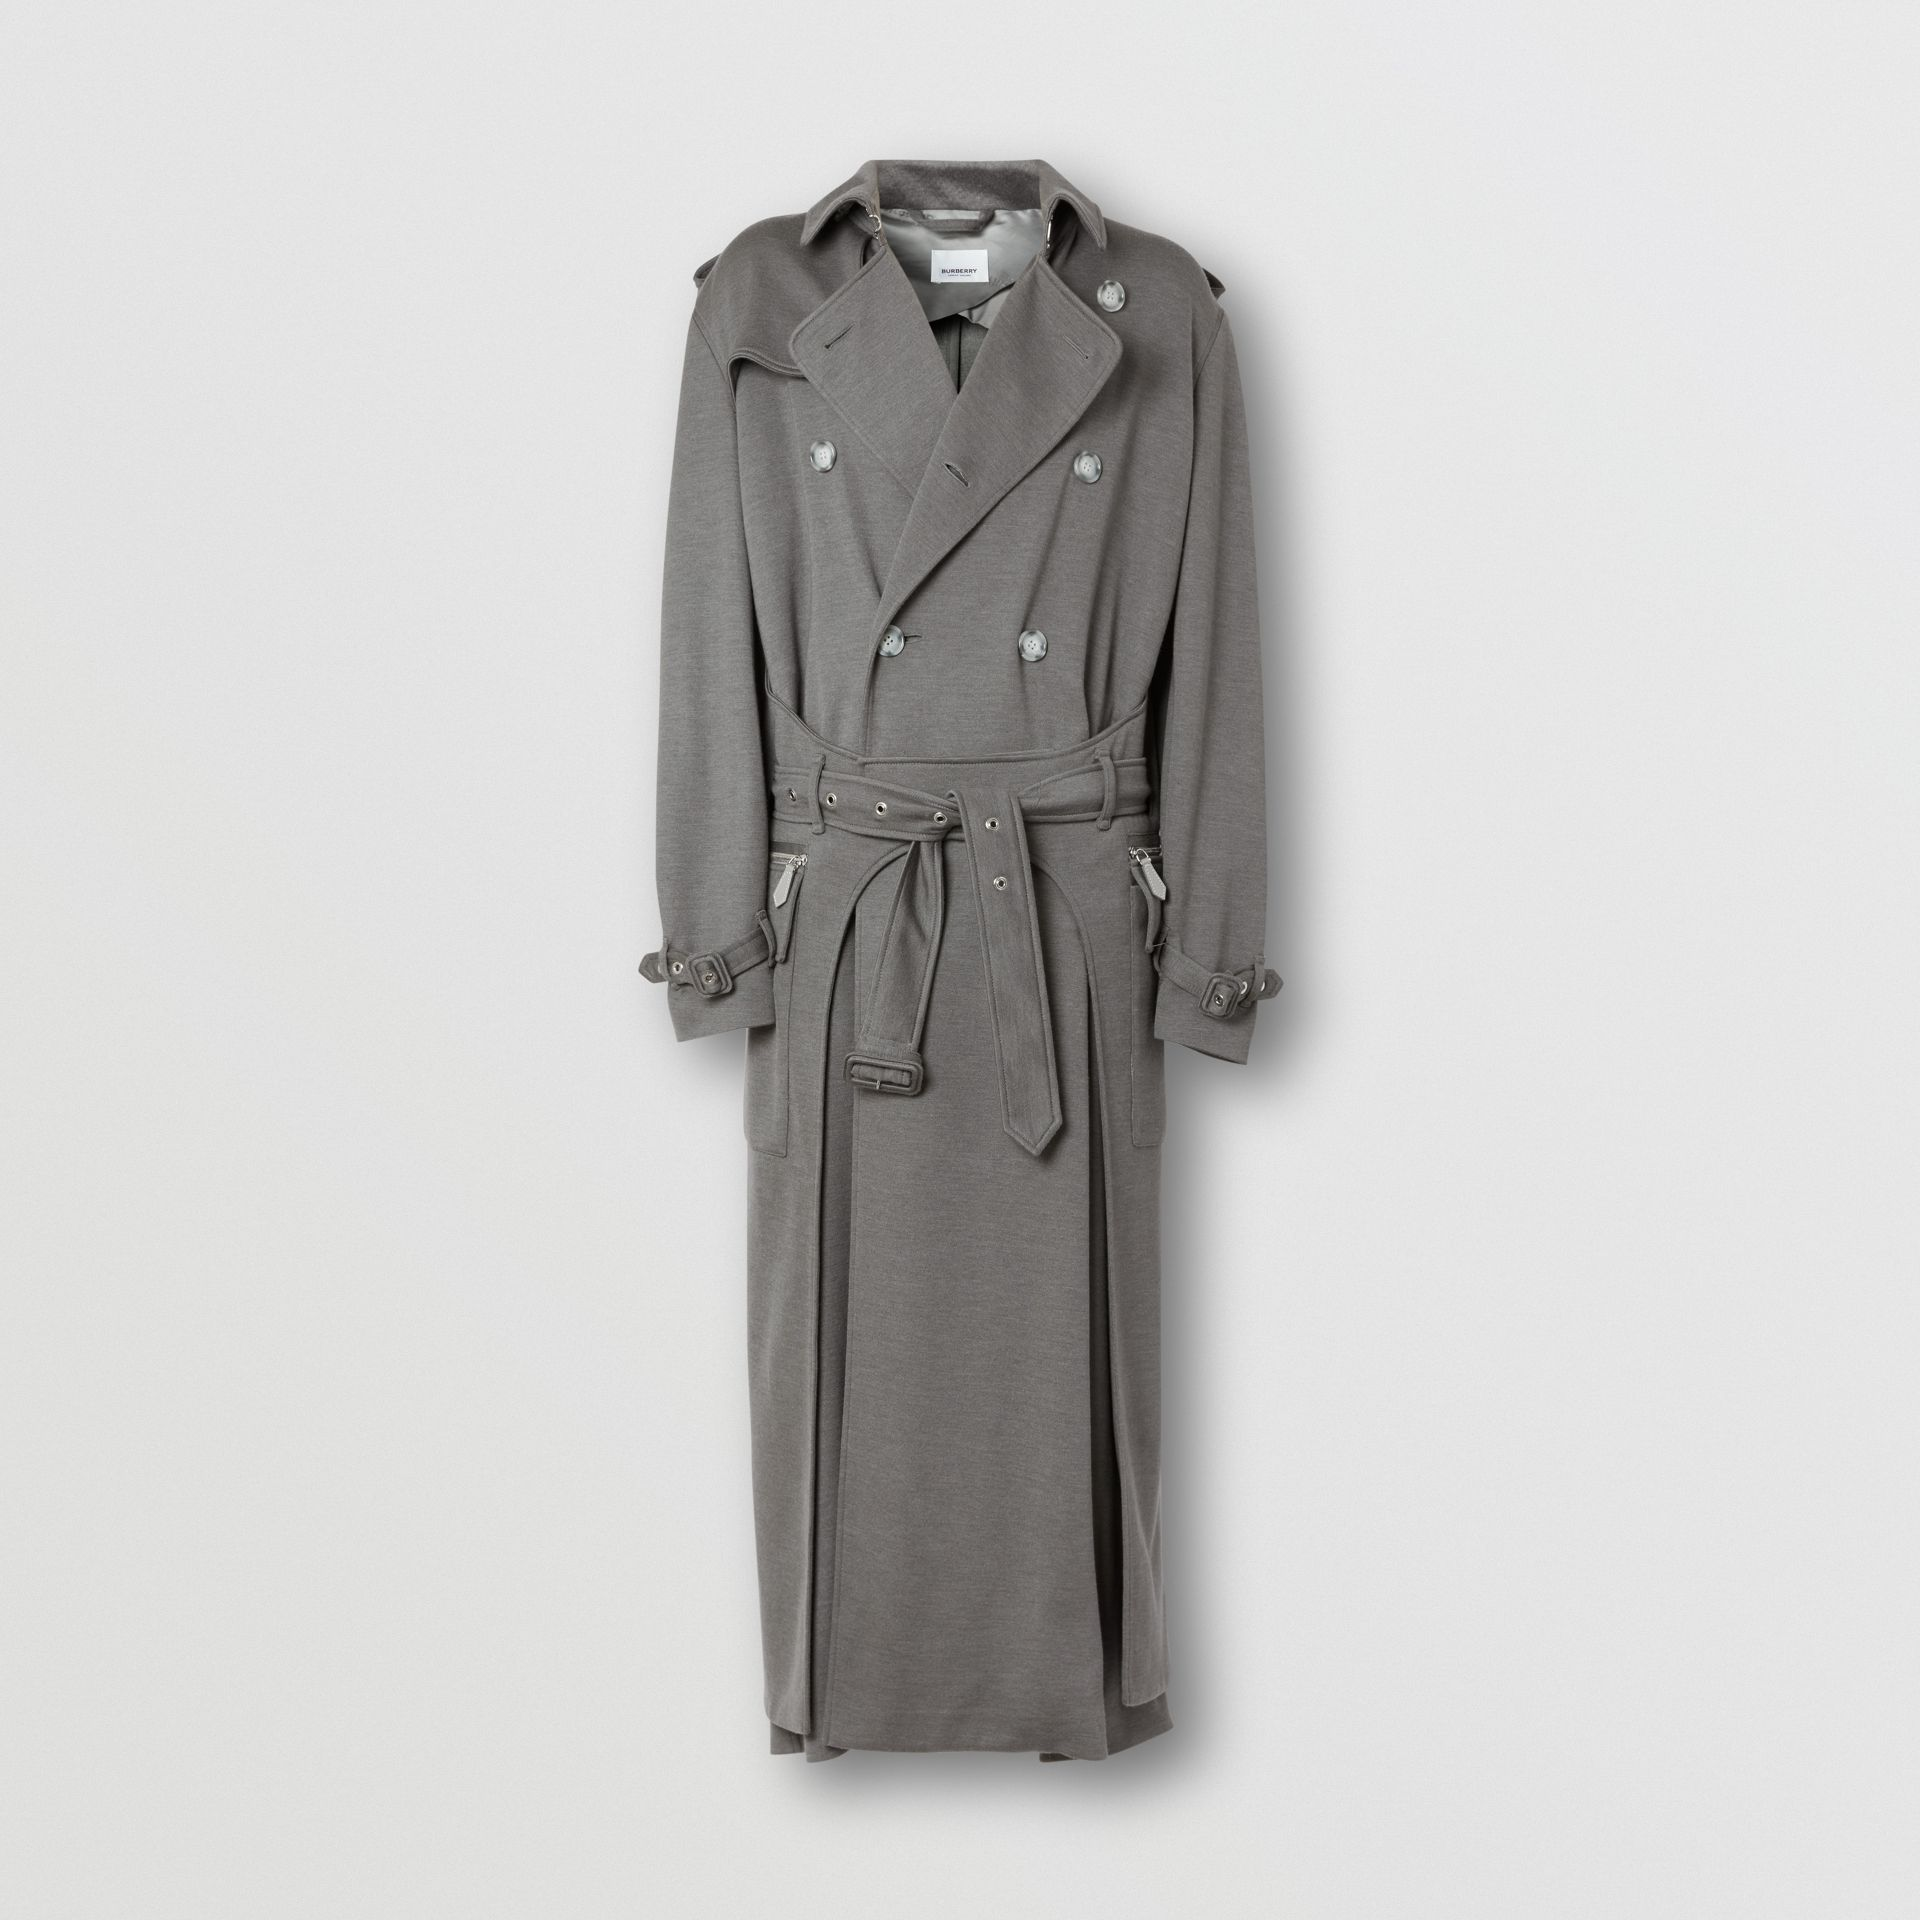 Cargo Pocket Detail Cashmere Silk Trench Coat in Cloud Grey - Men | Burberry Canada - gallery image 3